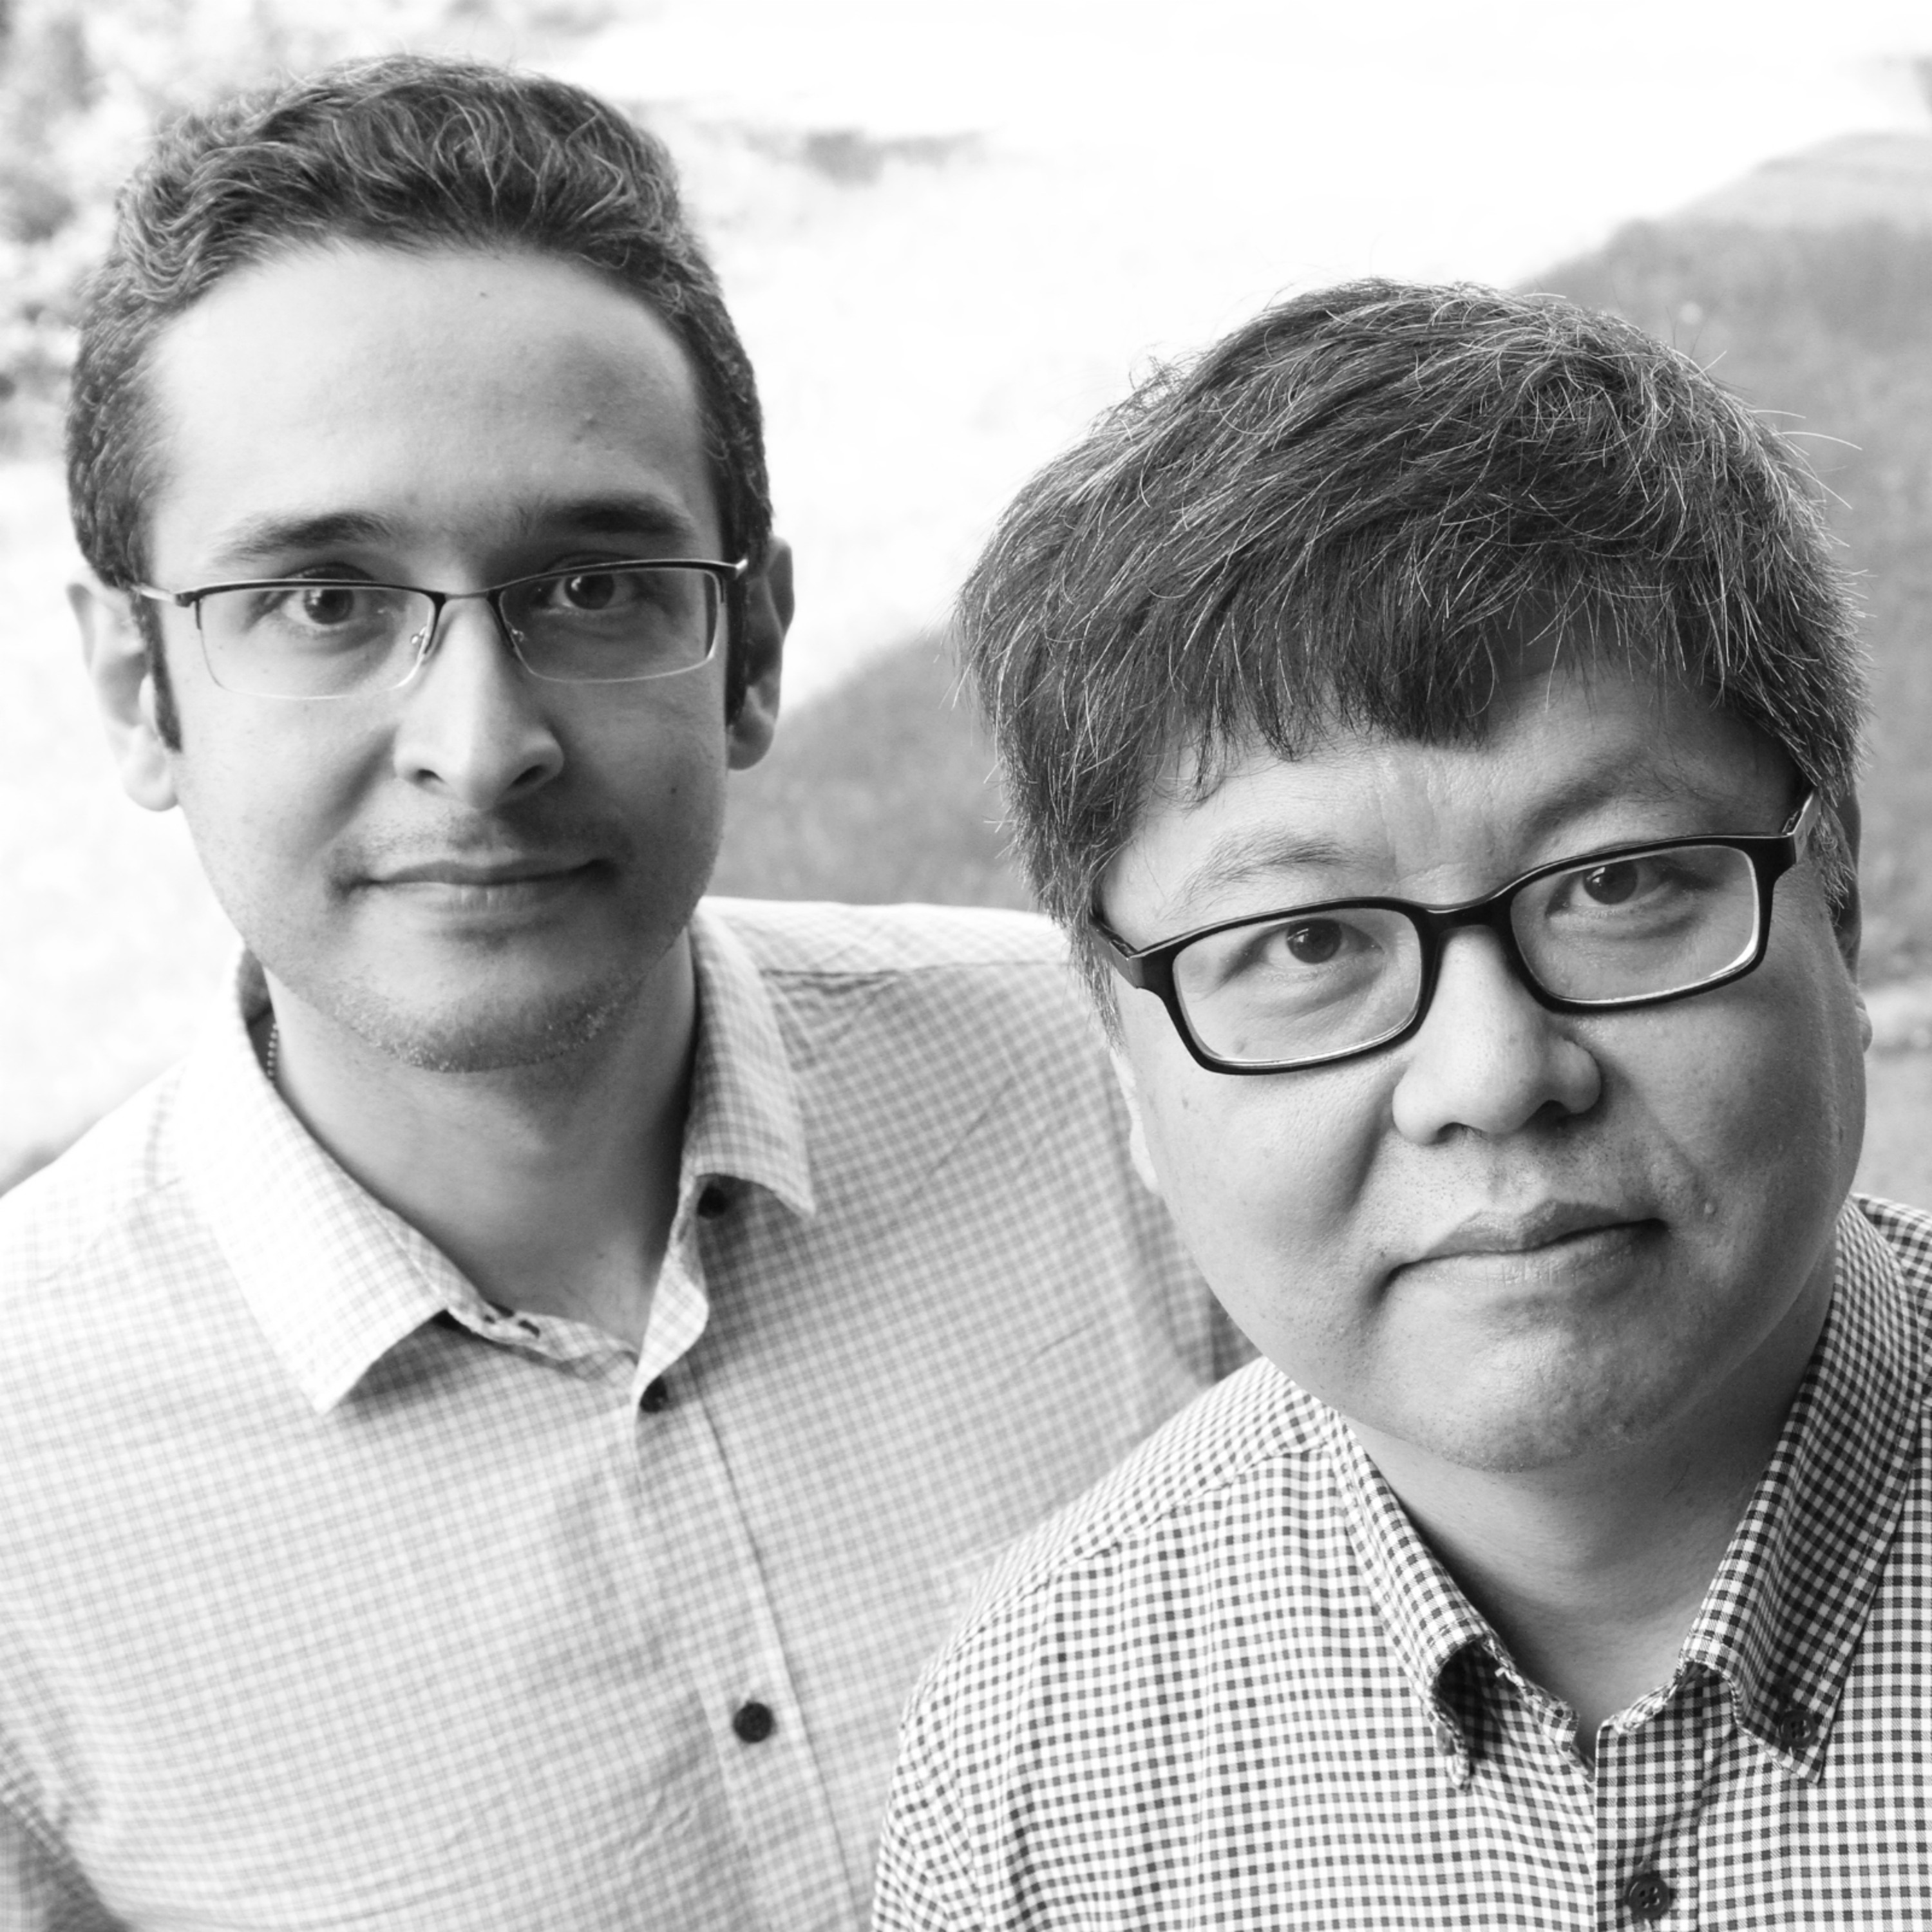 22 Manomotion – a new software for virtual and augmented reality: Sharouz Yousefi and Haibo Li